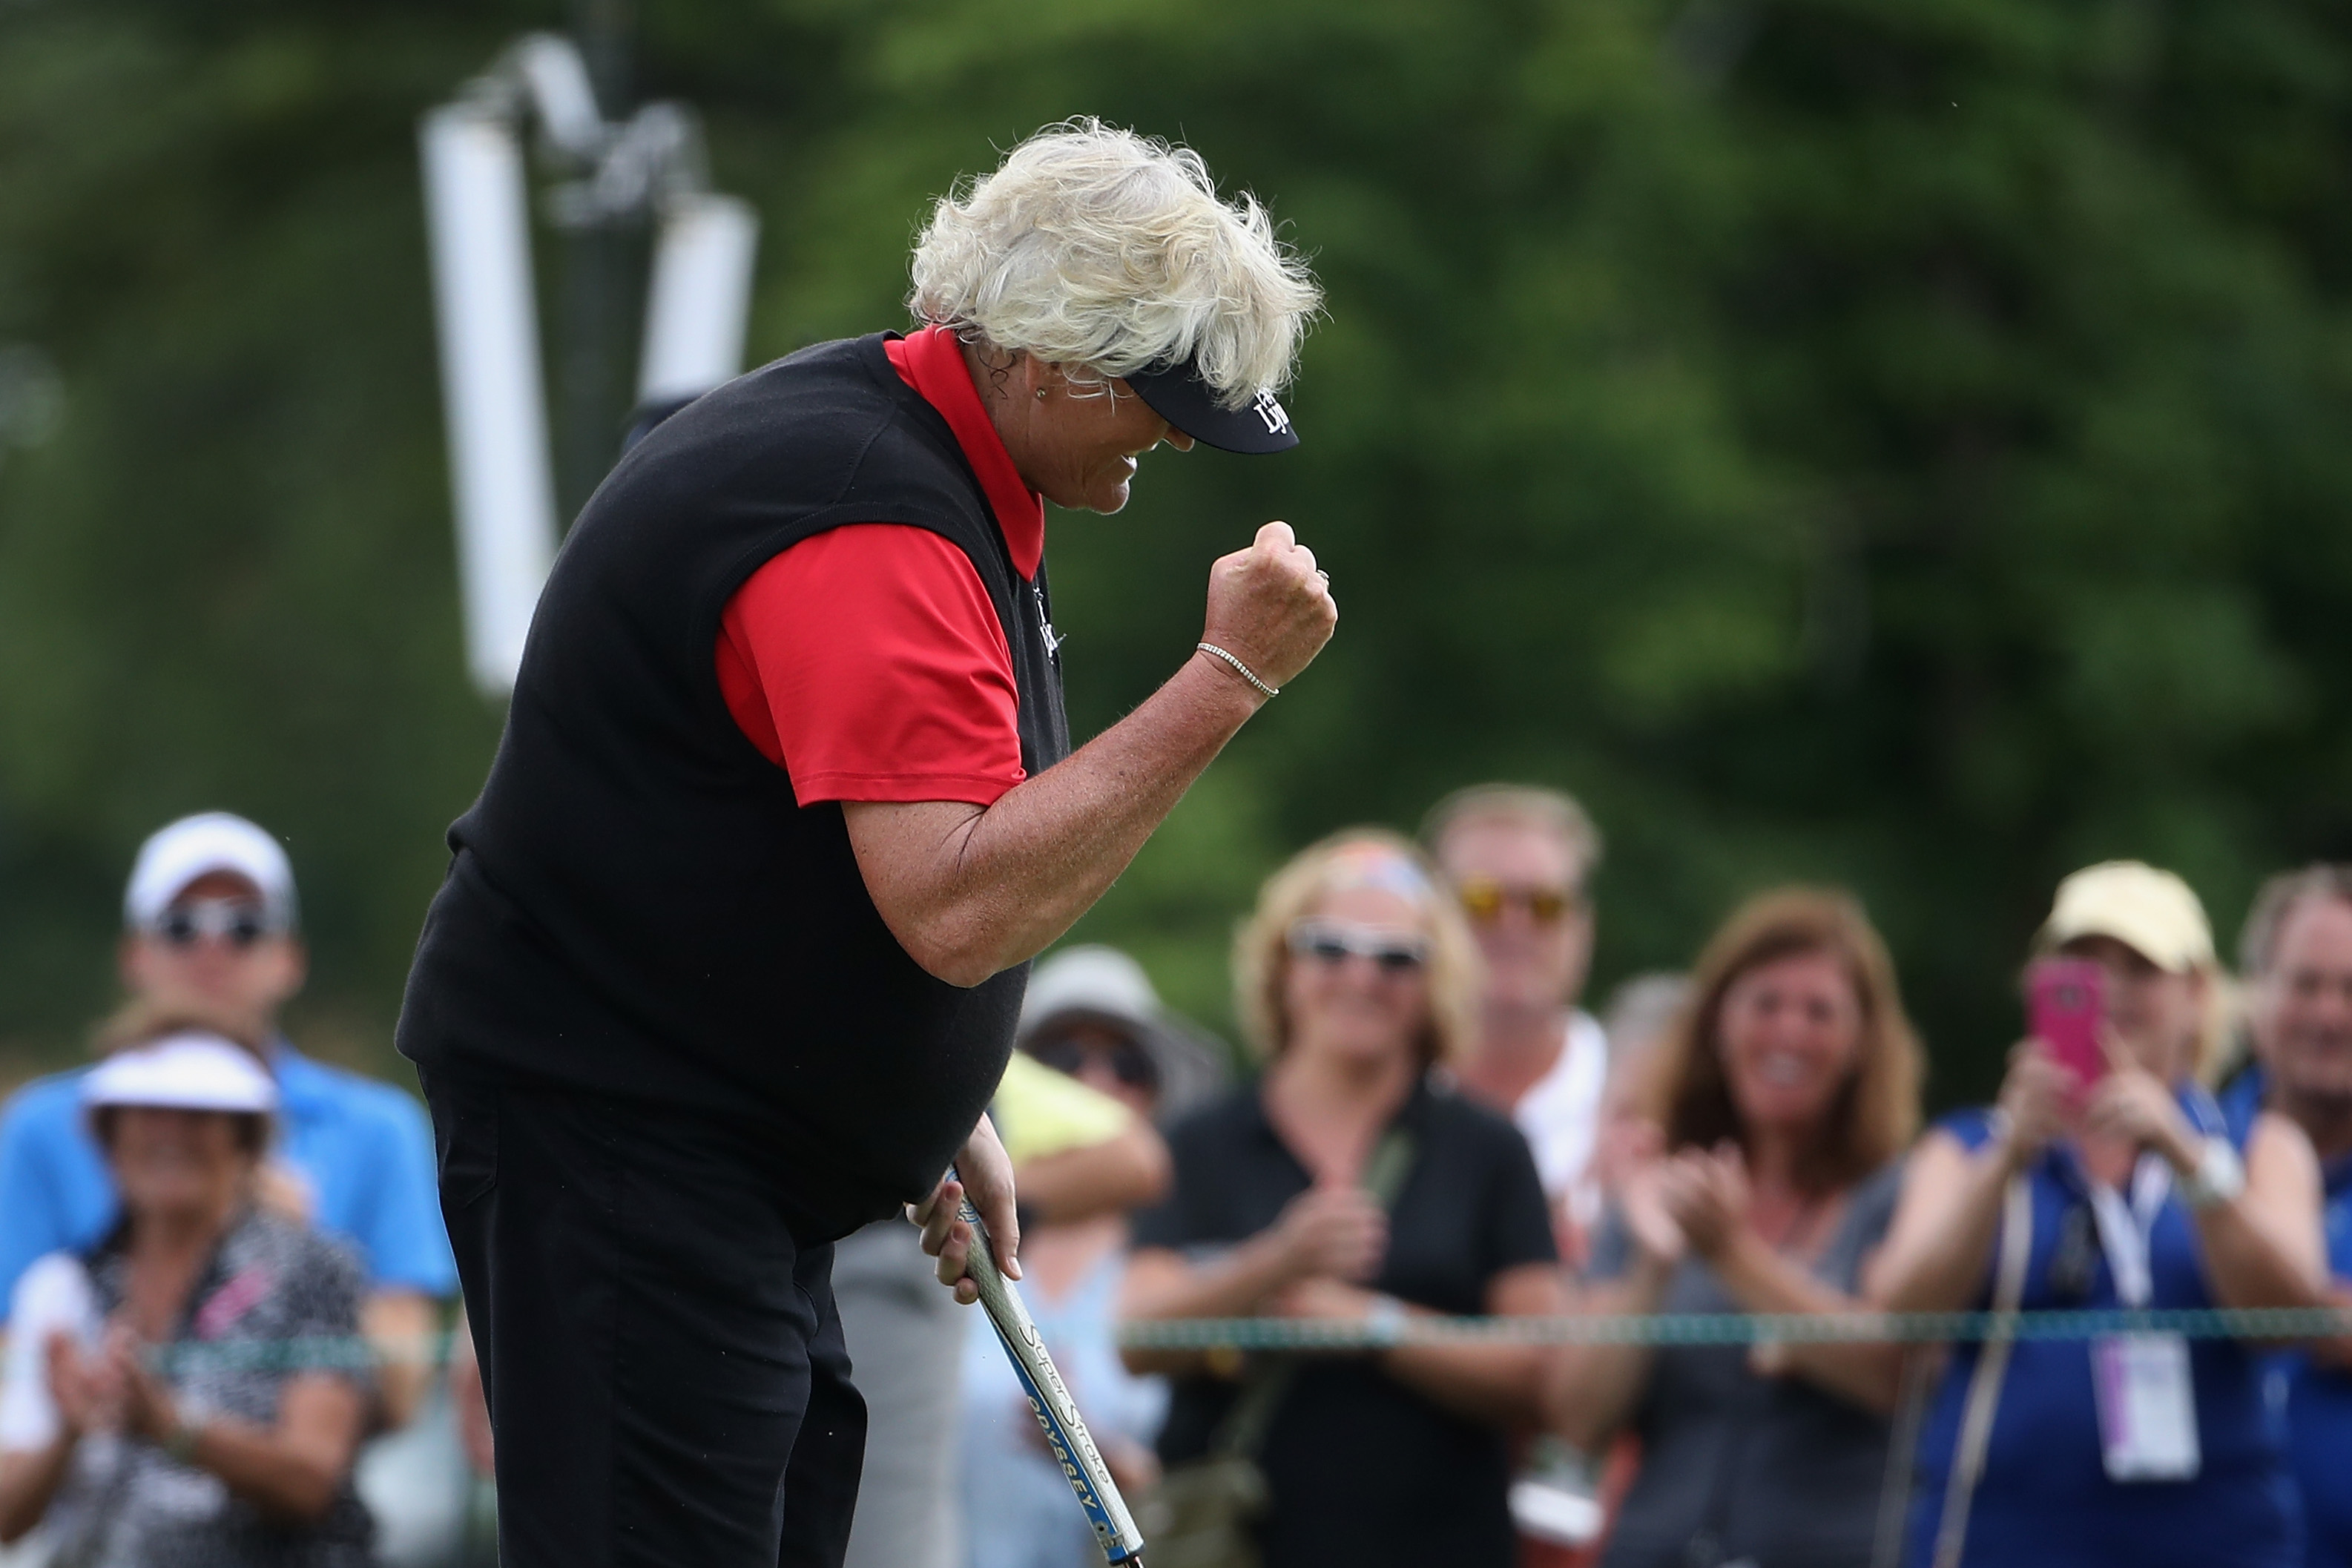 WHEATON, IL - JULY 15: Laura Davies of England celebrates after winning the U.S. Senior Women's Open at Chicago Golf Club on July 15, 2018 in Wheaton, Illinois. (Photo by Christian Petersen/Getty Images)